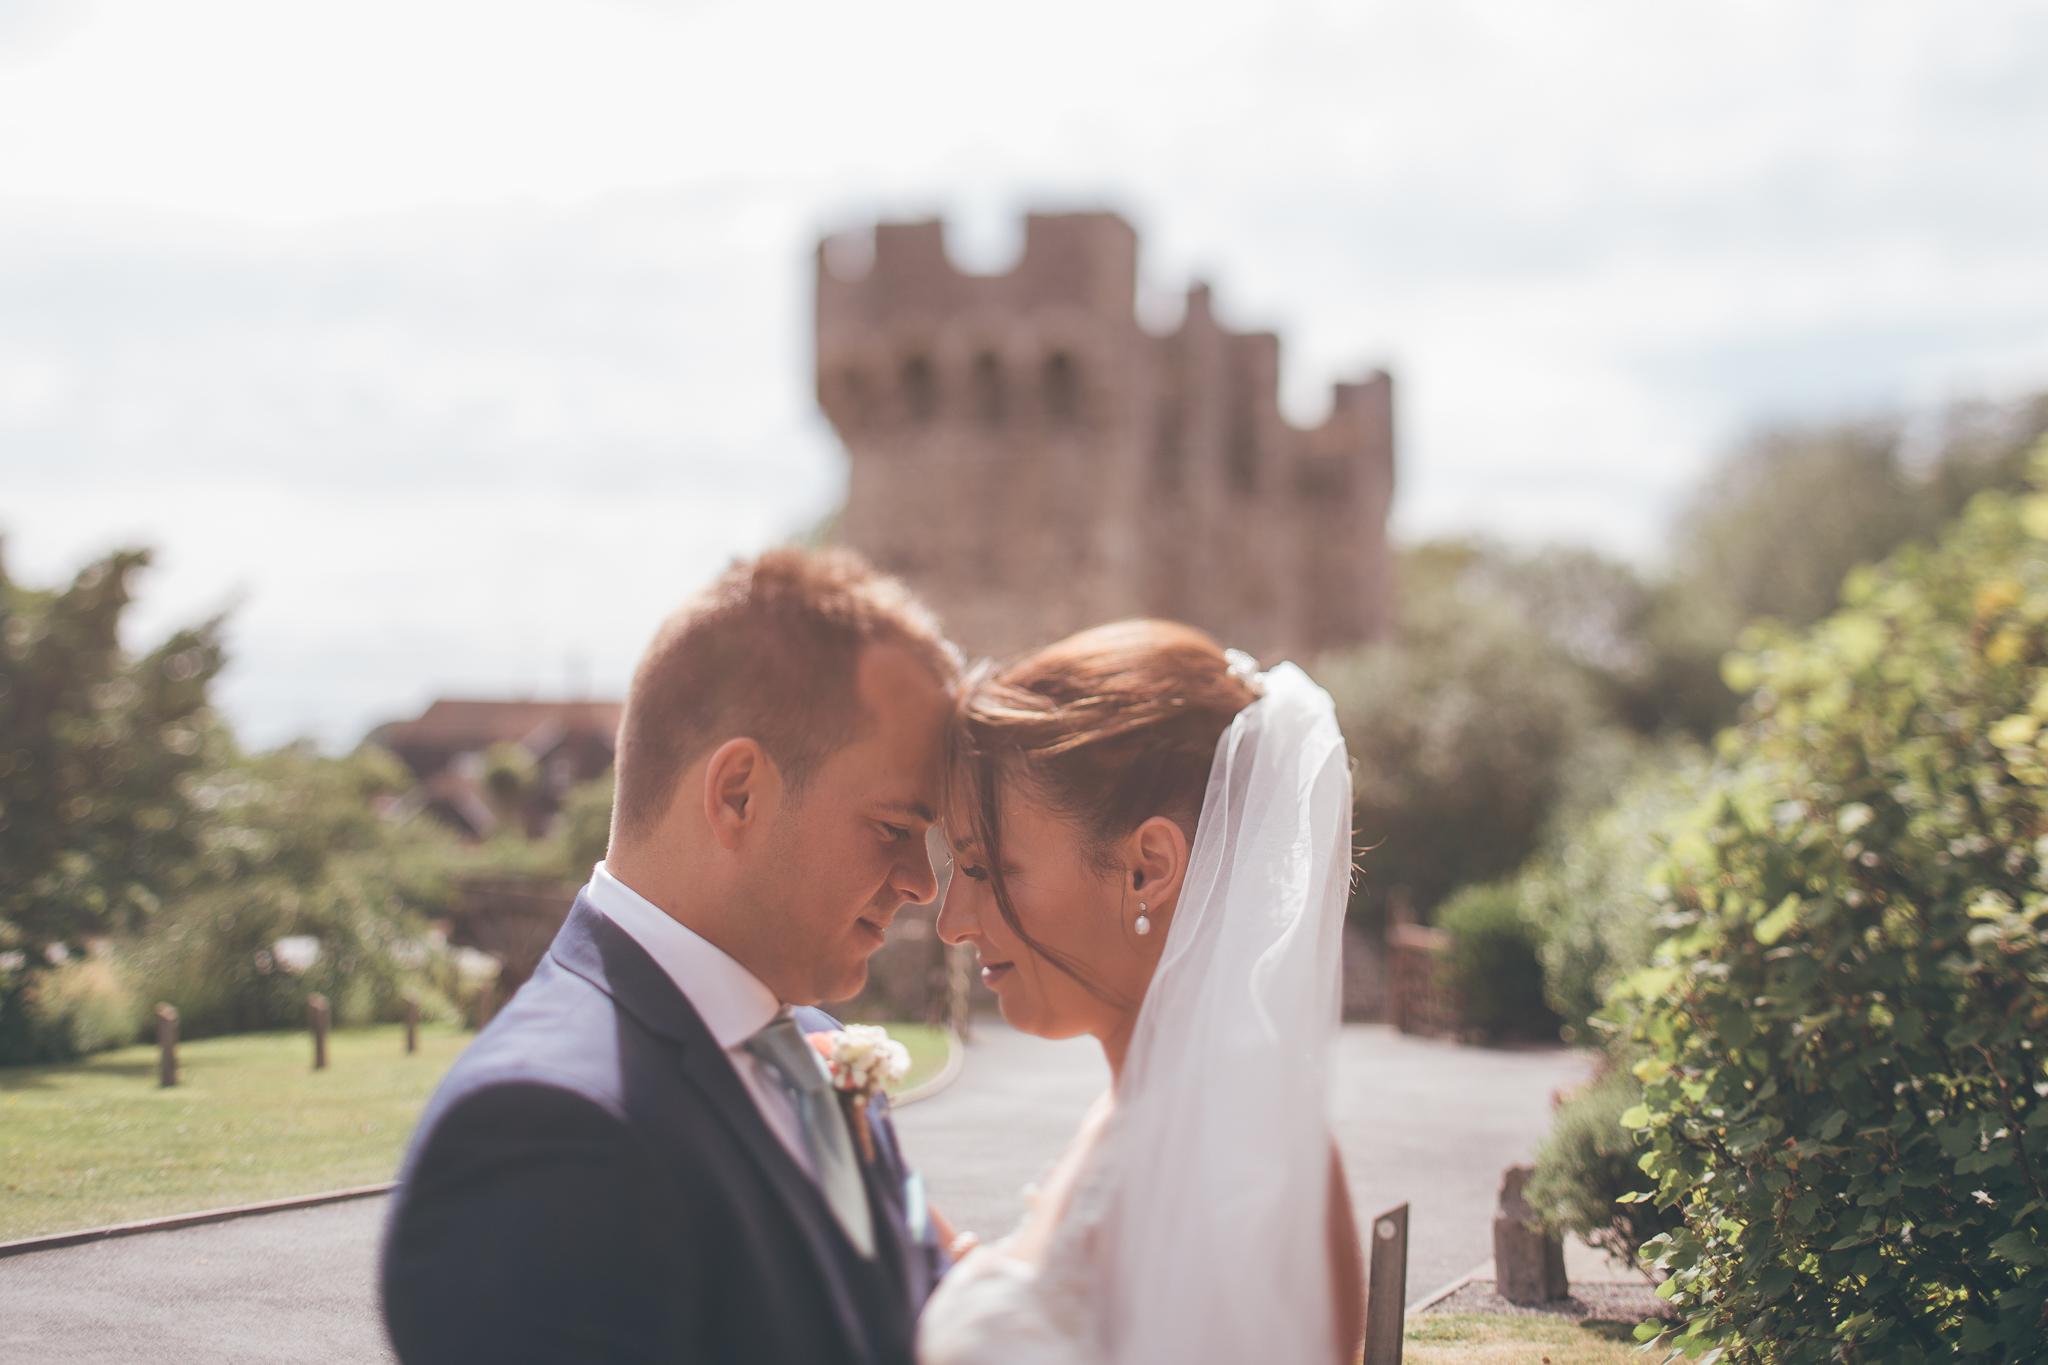 Joanna Nicole Photography Creative artistic wedding photography kent cooling castle barns vintage documentary (67 of 106).jpg